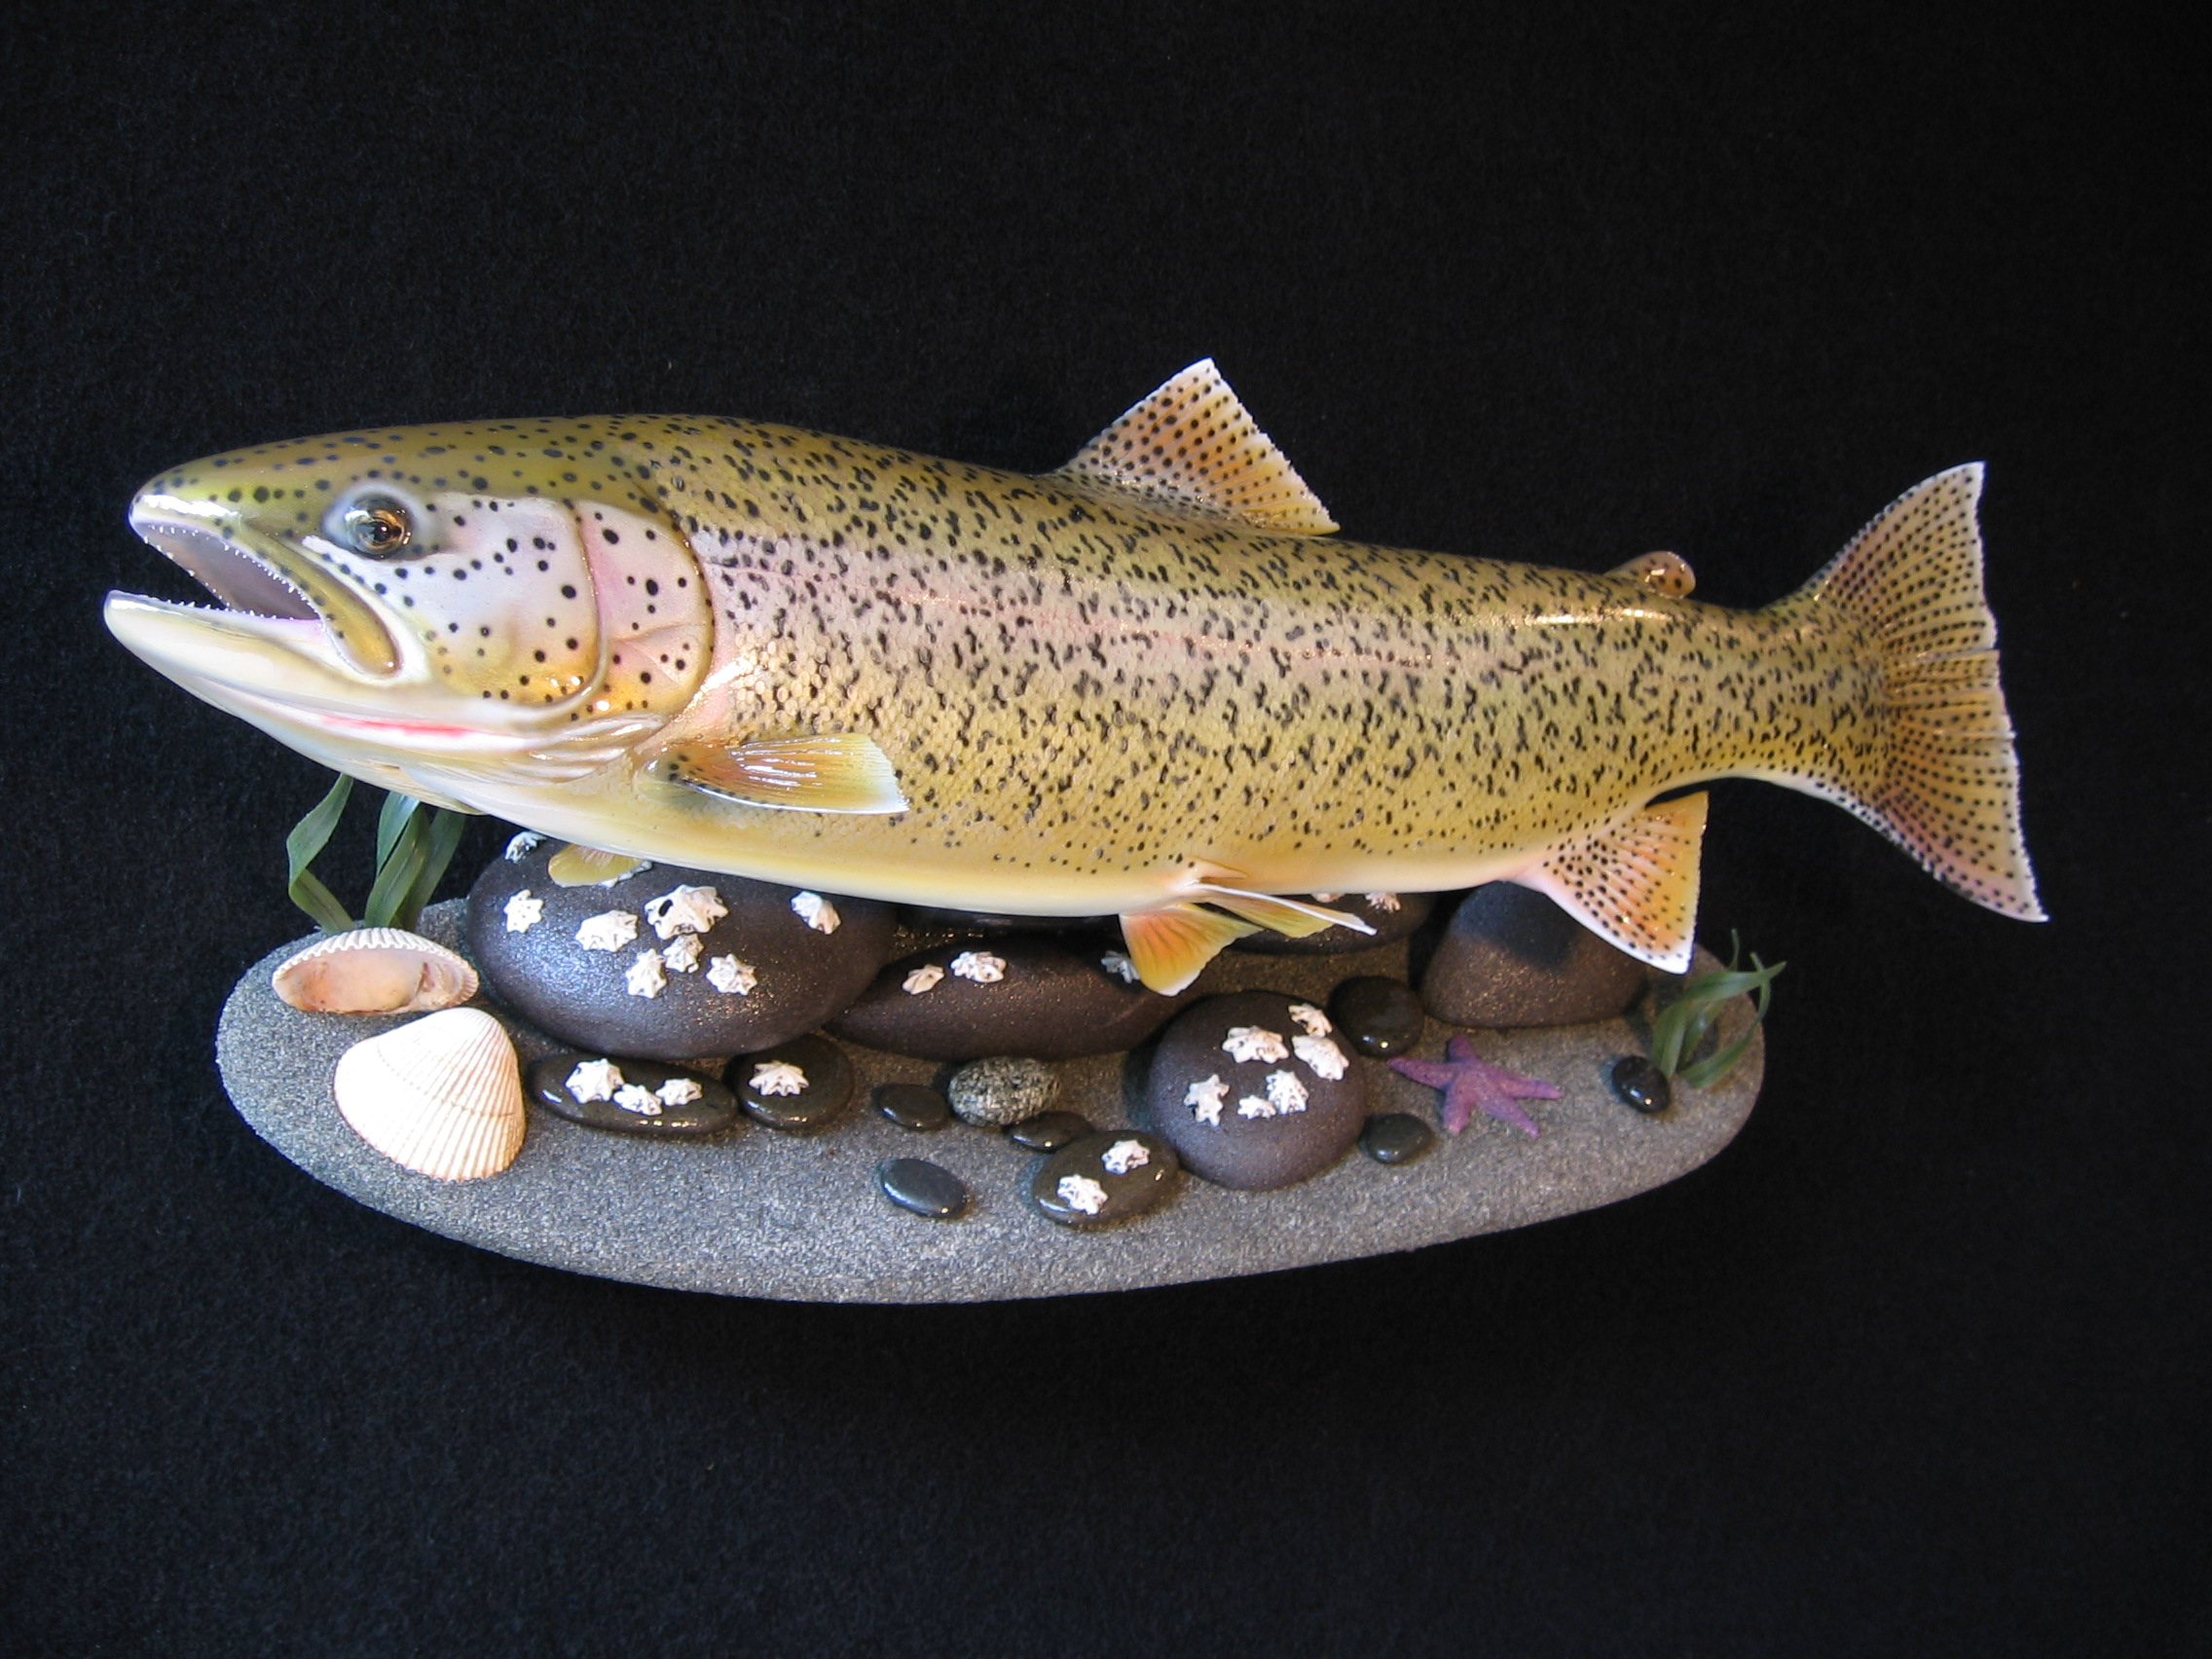 SeaRun Cutthroat Fish Replica on Beach Wall Mount Display